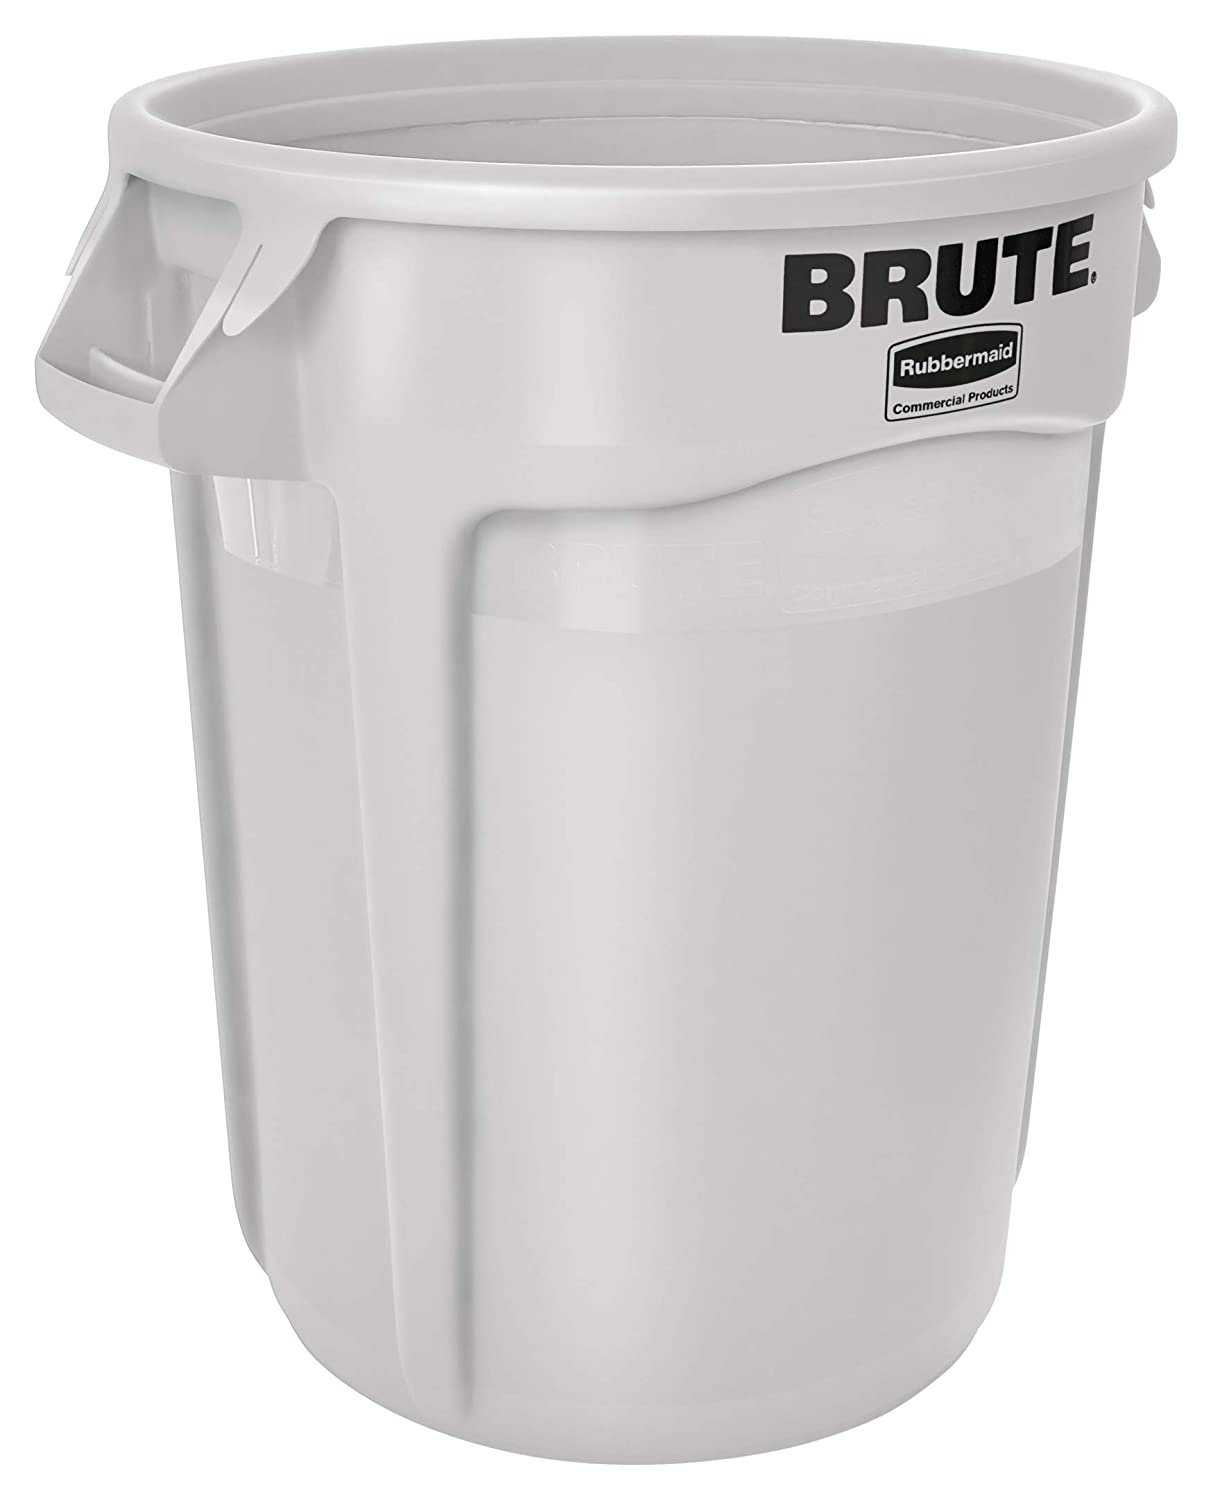 Rubbermaid Commercial Products FG263200WHT BRUTE Heavy-Duty Round Trash/Garbage Can, 32-Gallon, White